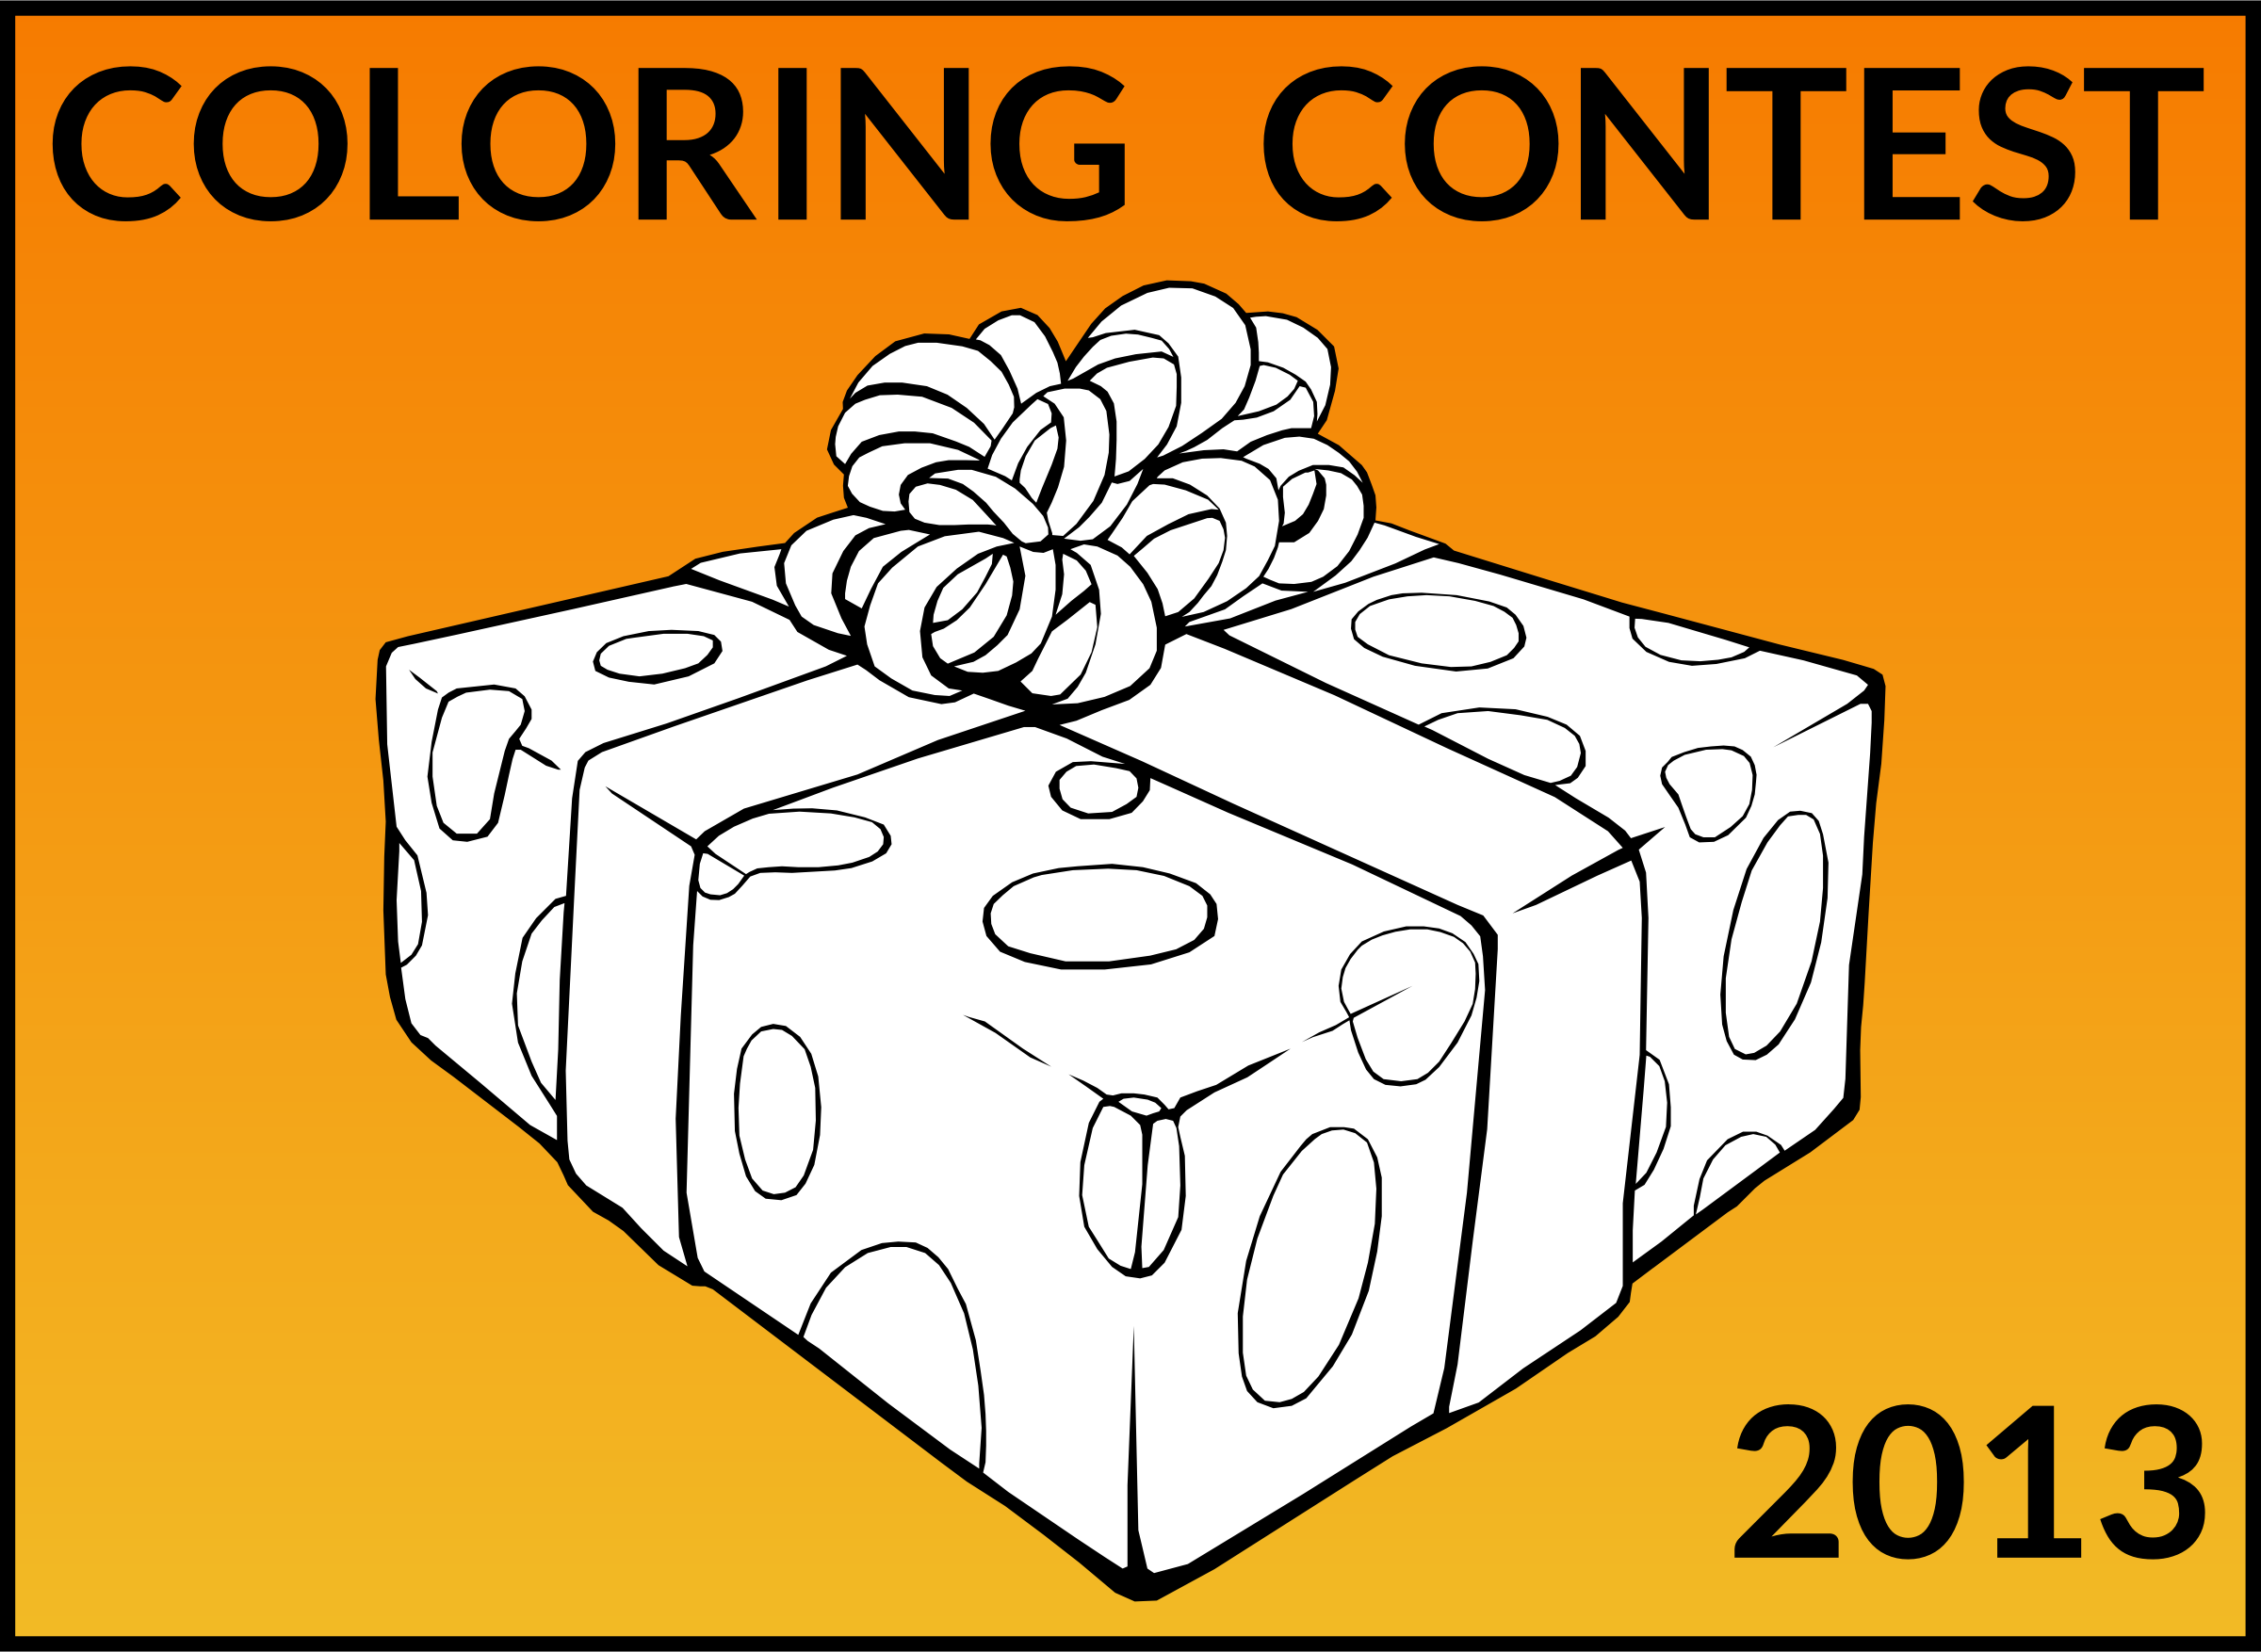 Join Openclipart Coloring Contest! by openclipart